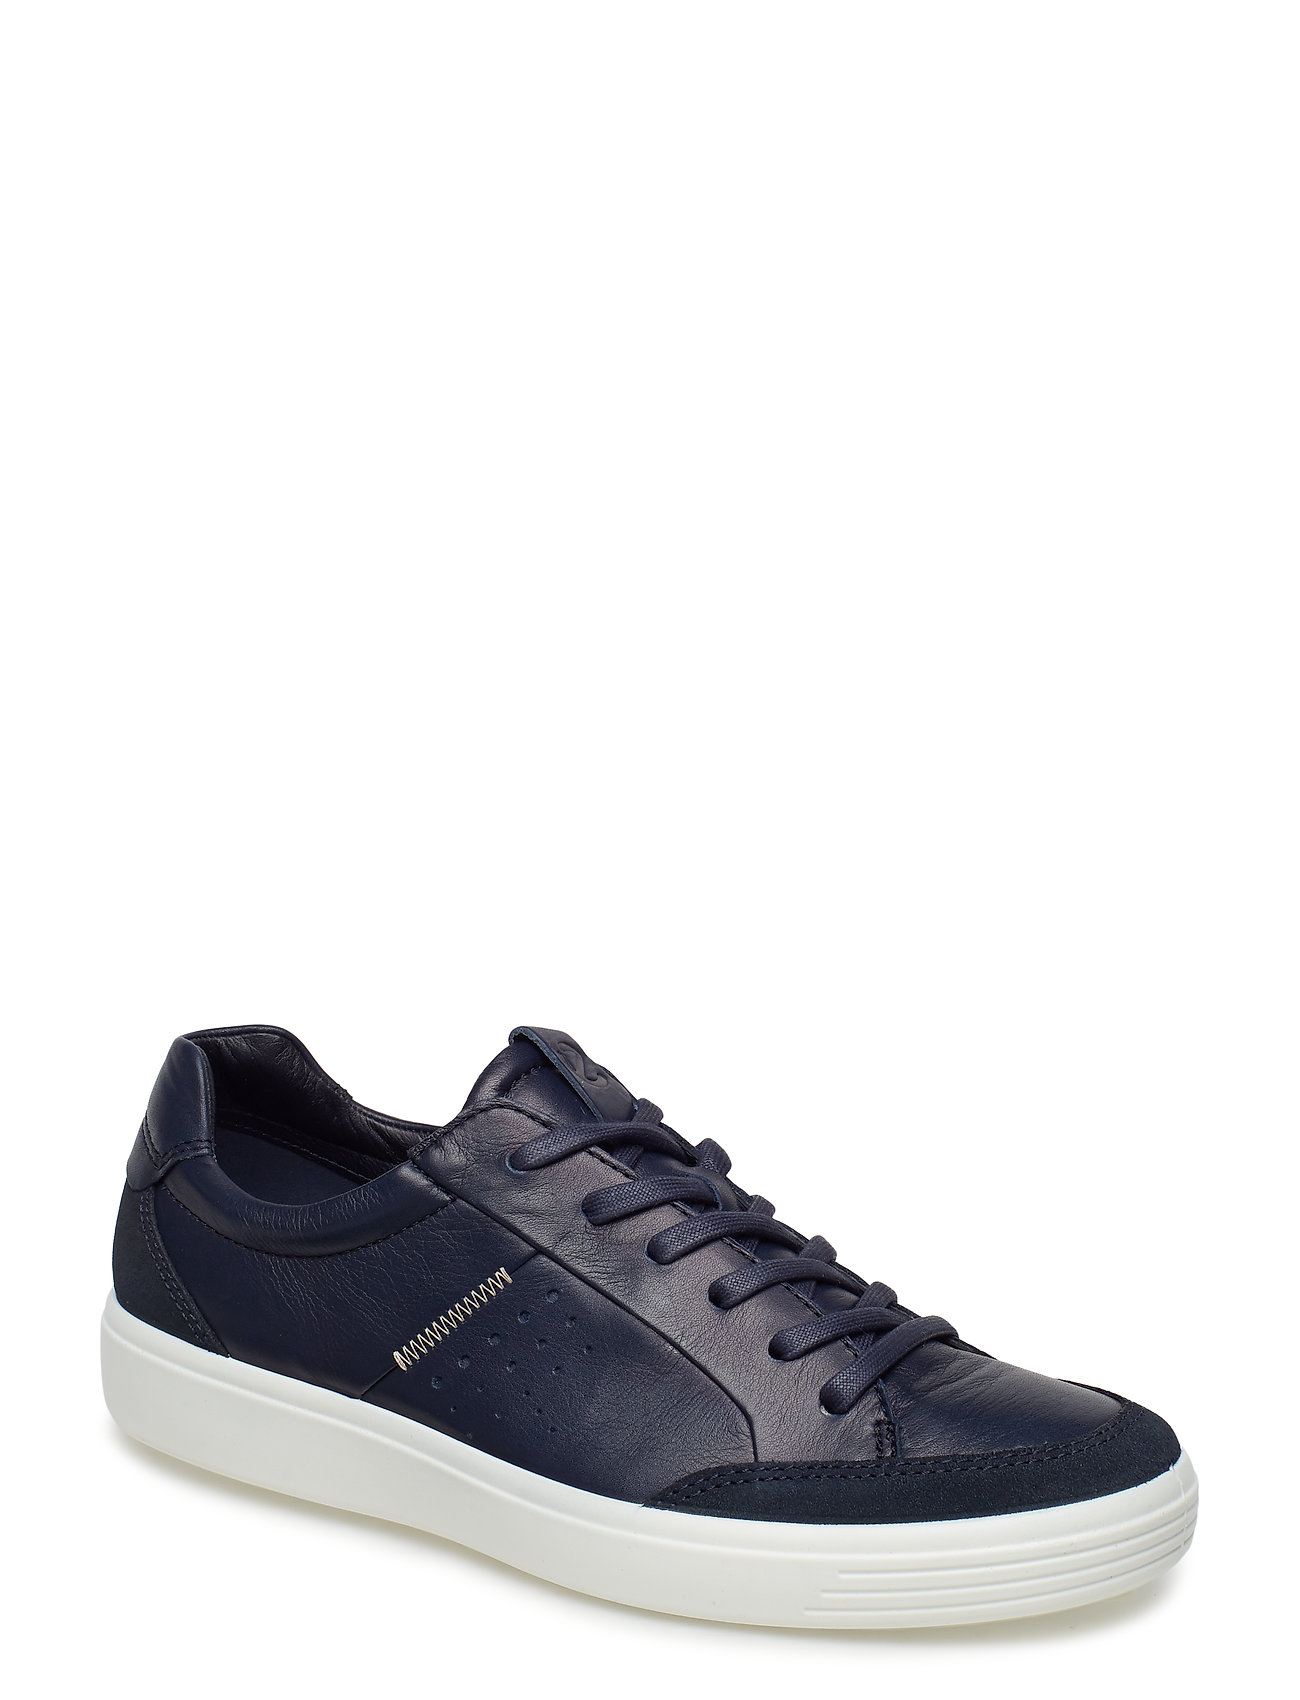 Image of Soft 7 M Low-top Sneakers Blå ECCO (3092617041)